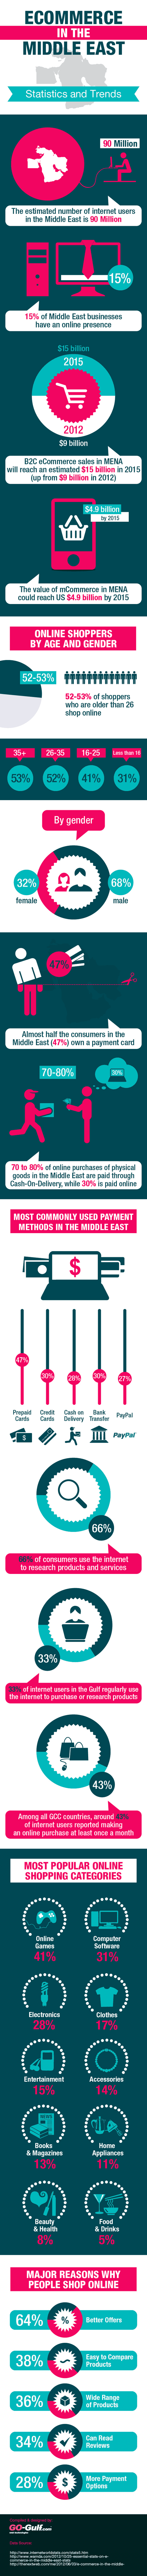 Middle-East-eCommerce-Market